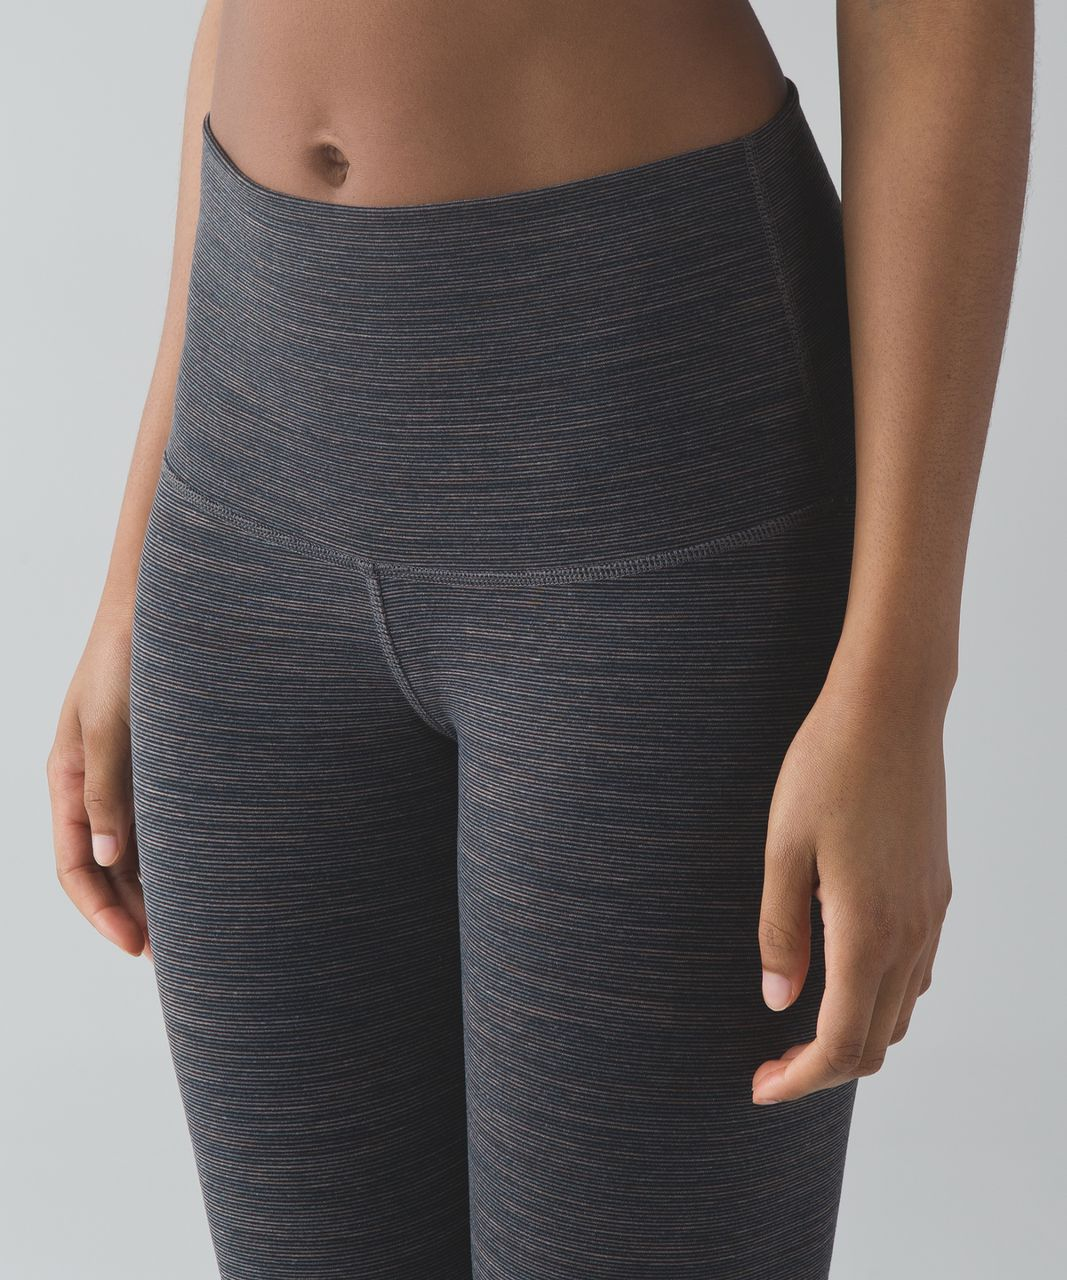 Lululemon Wunder Under Crop (Hi-Rise) - Wee Are From Space Cool Cocoa Soot Light